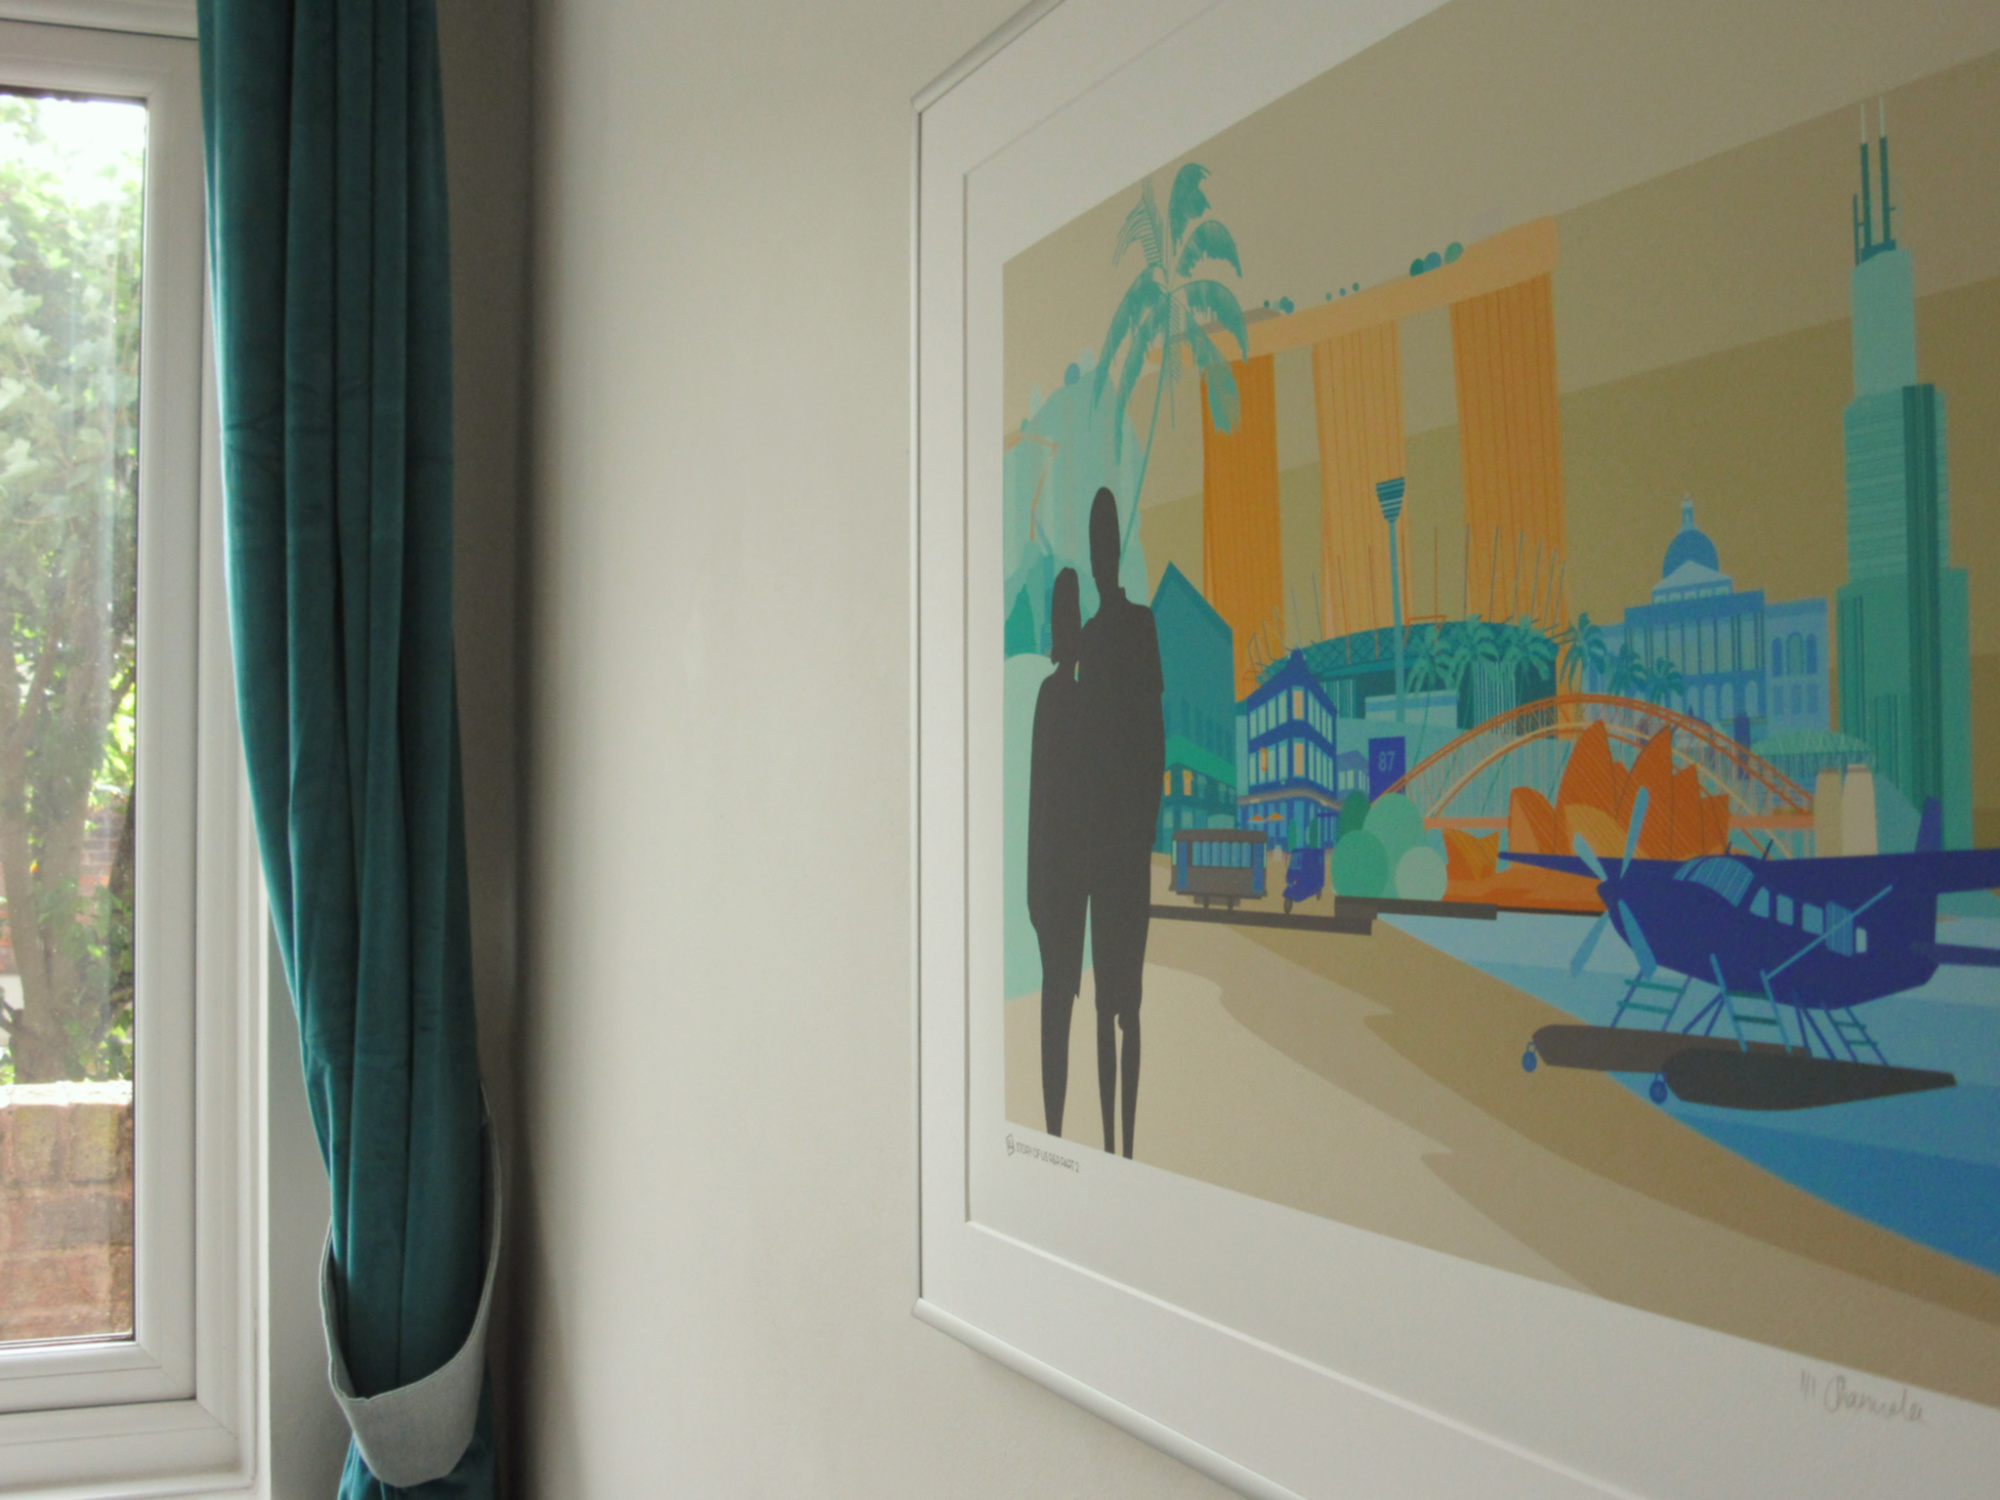 Bespoke commissions - Commissions range from my Storyline Skyline concept, composed of your favourite travel memories and moments, to special venue illustrations and bespoke homeware